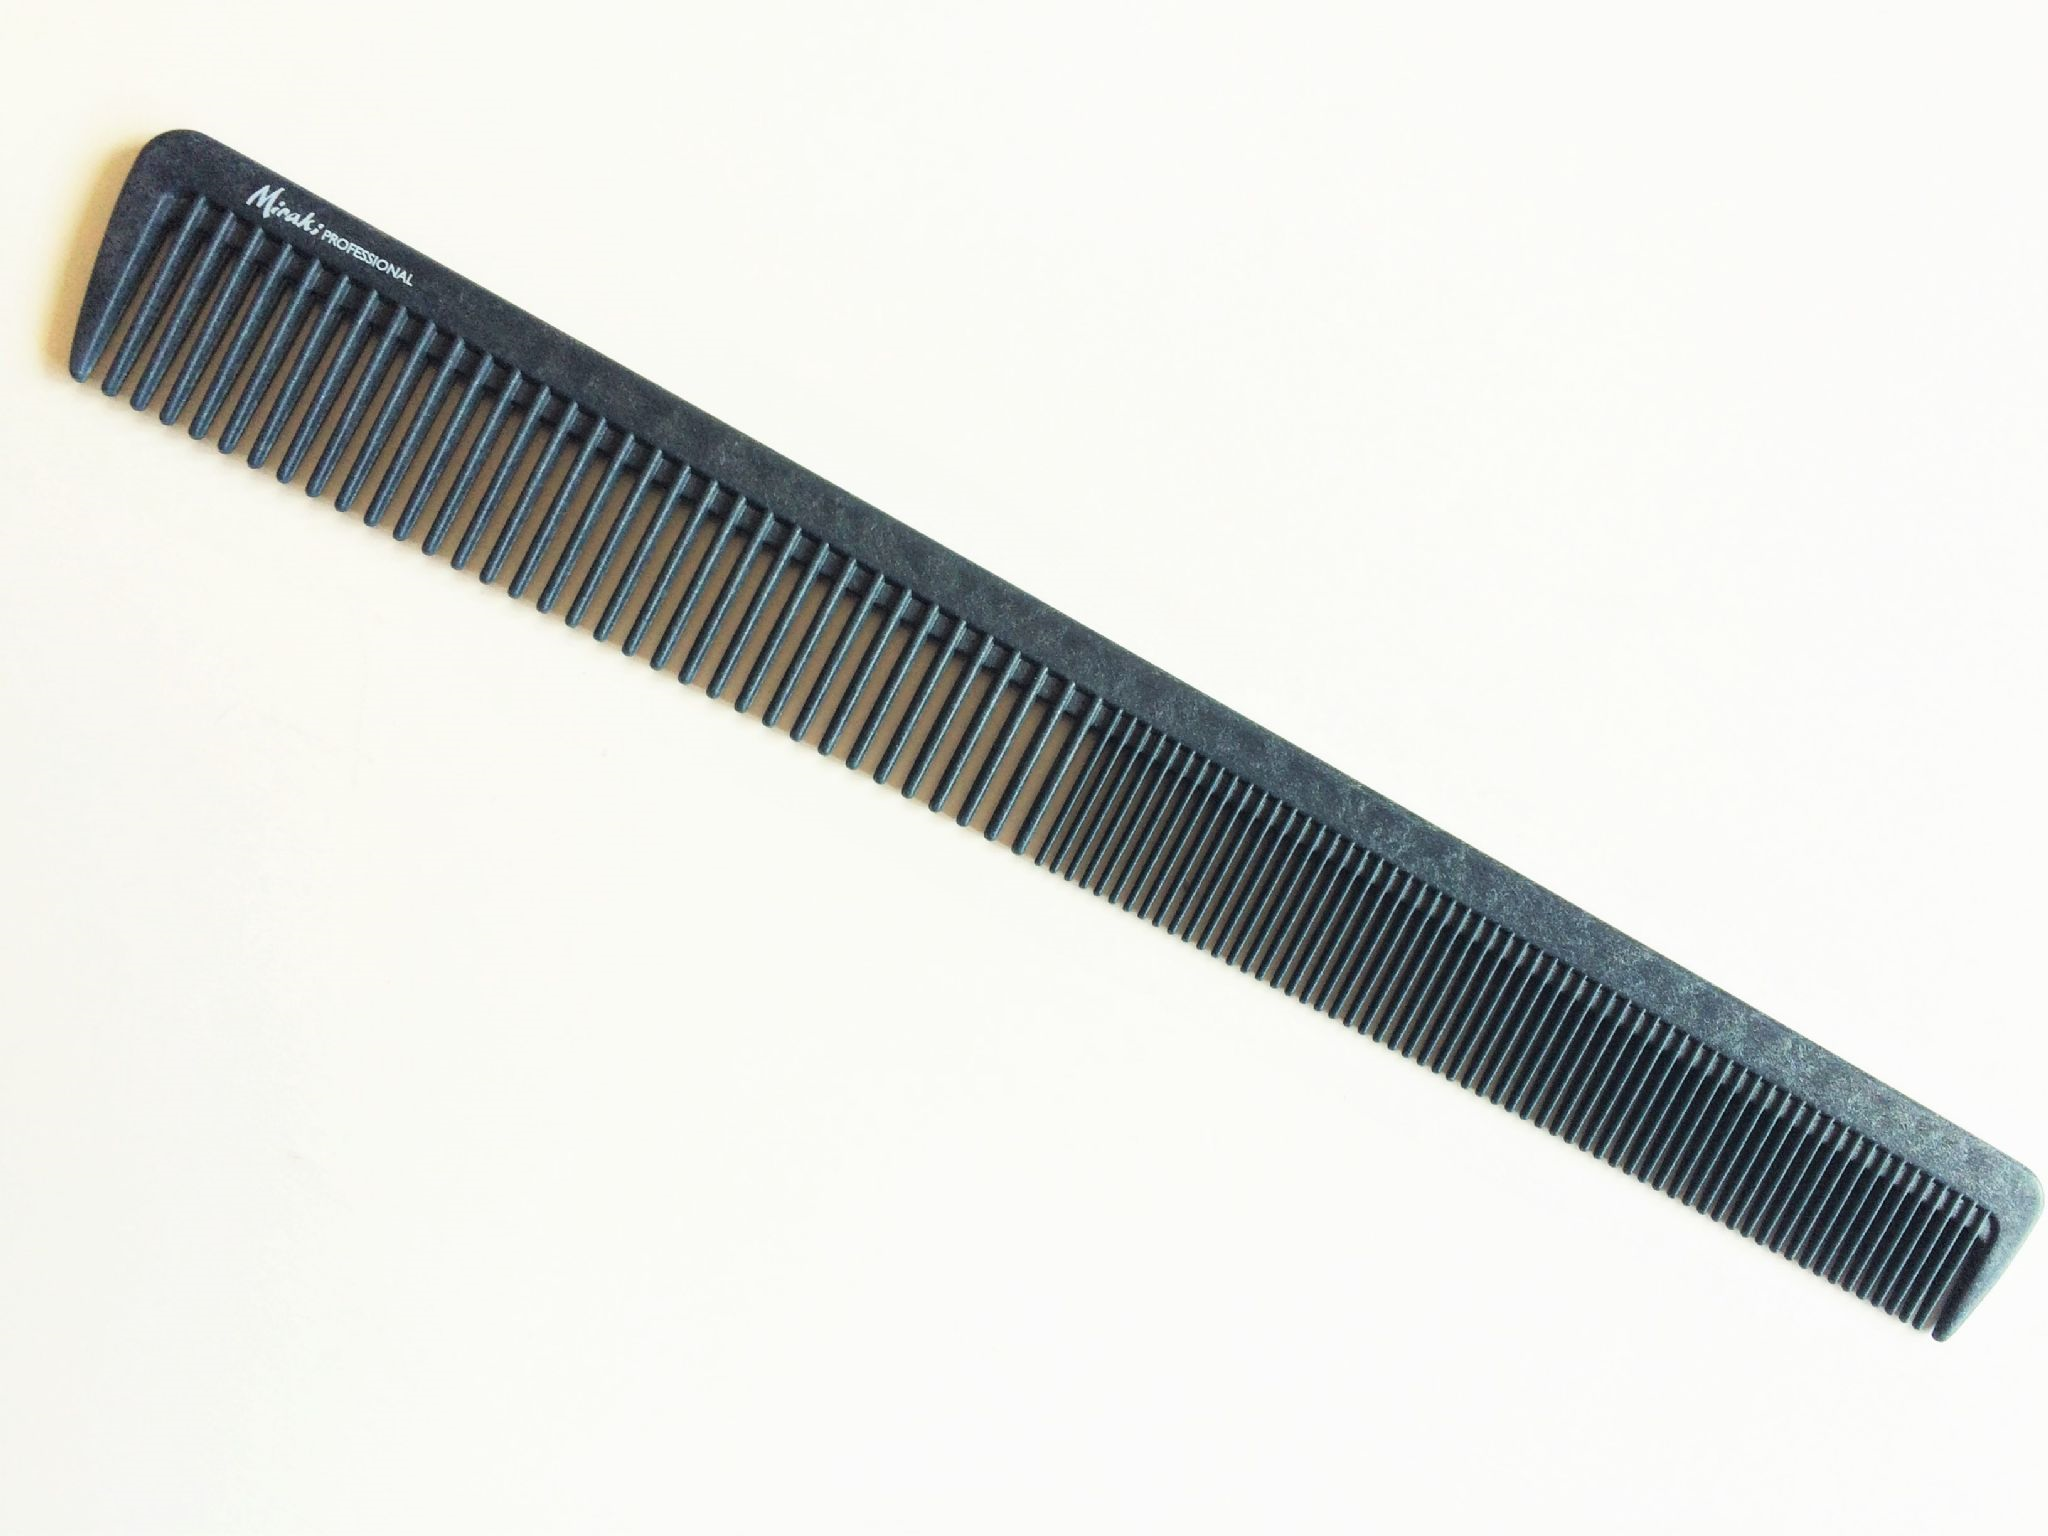 Miraki Barber Comb MC104.